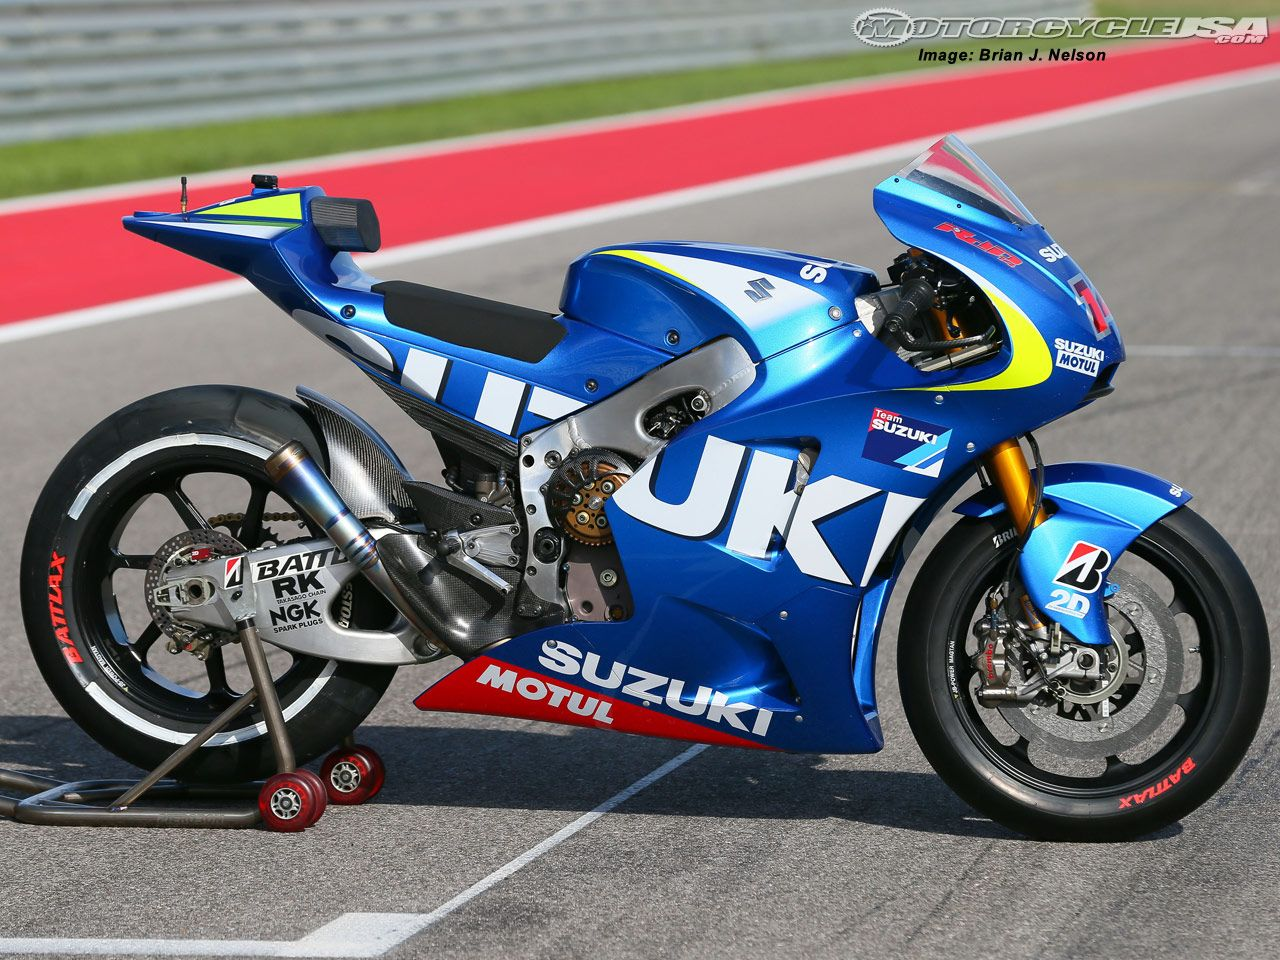 suzuki 500 gp motorcycle - google search | moto gp, grand prix